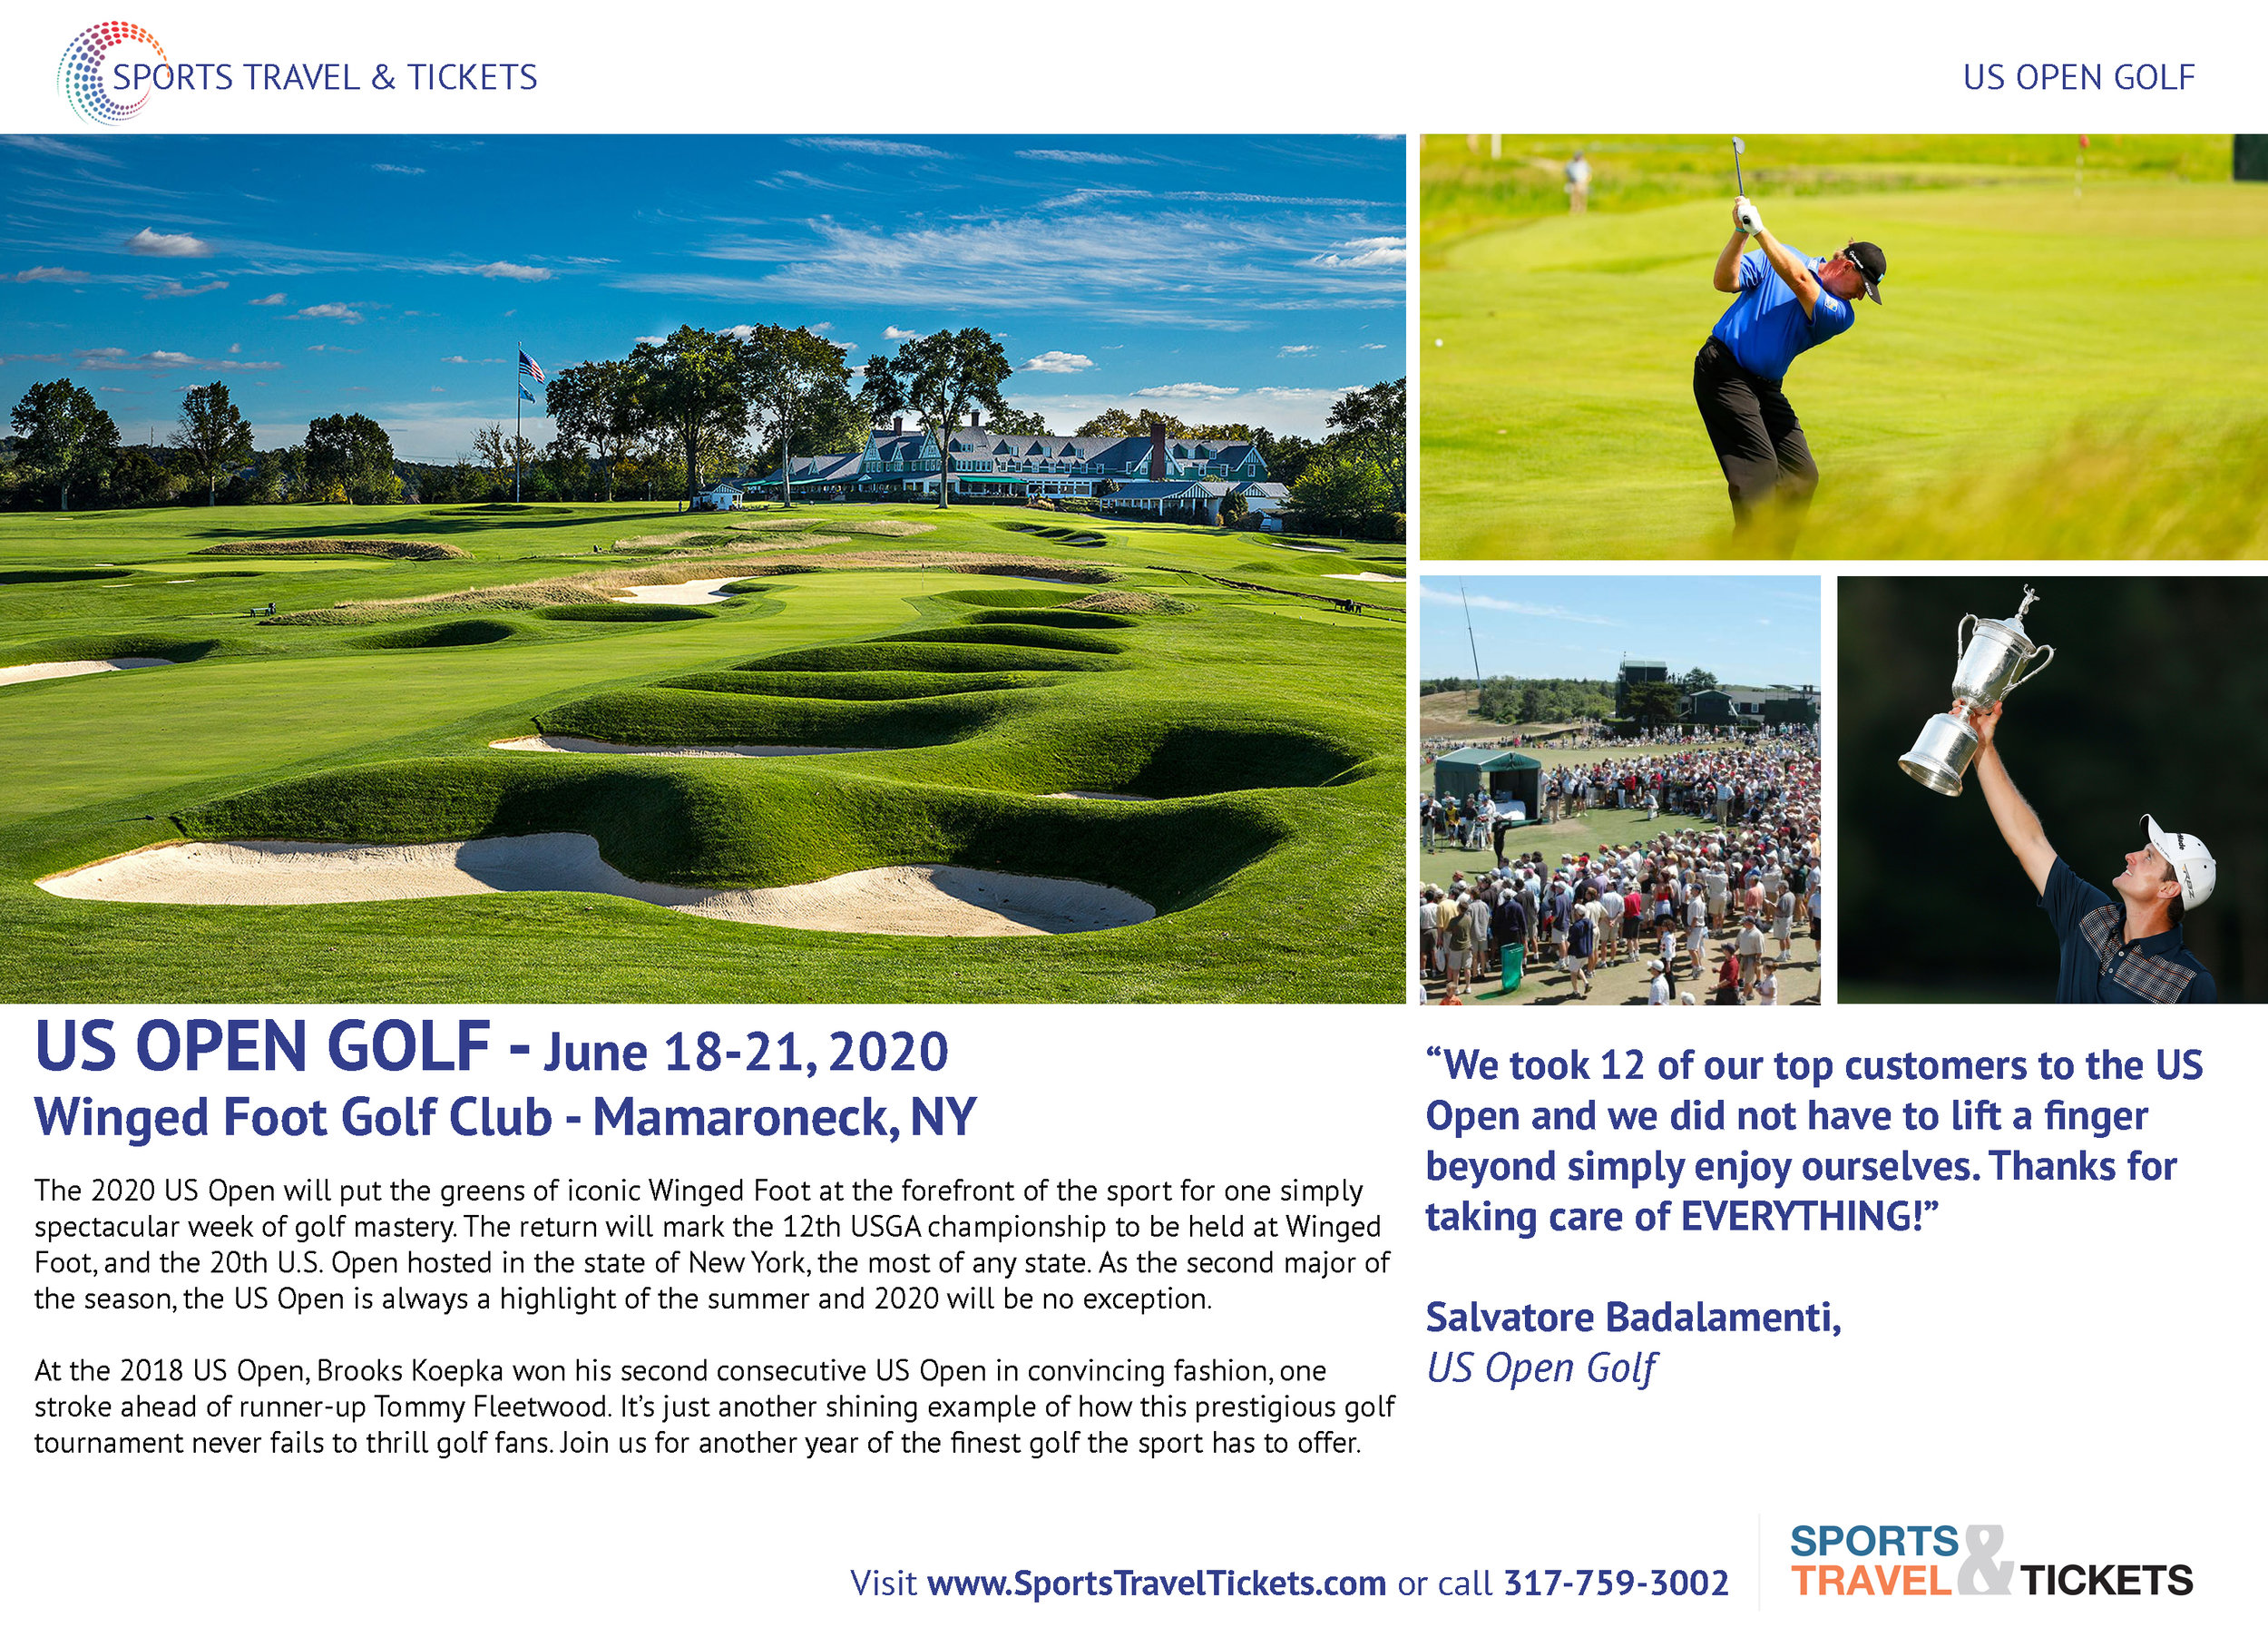 Sports Travel & Tickets Brochure US Open Golf travel packages VIP hospitality.jpg